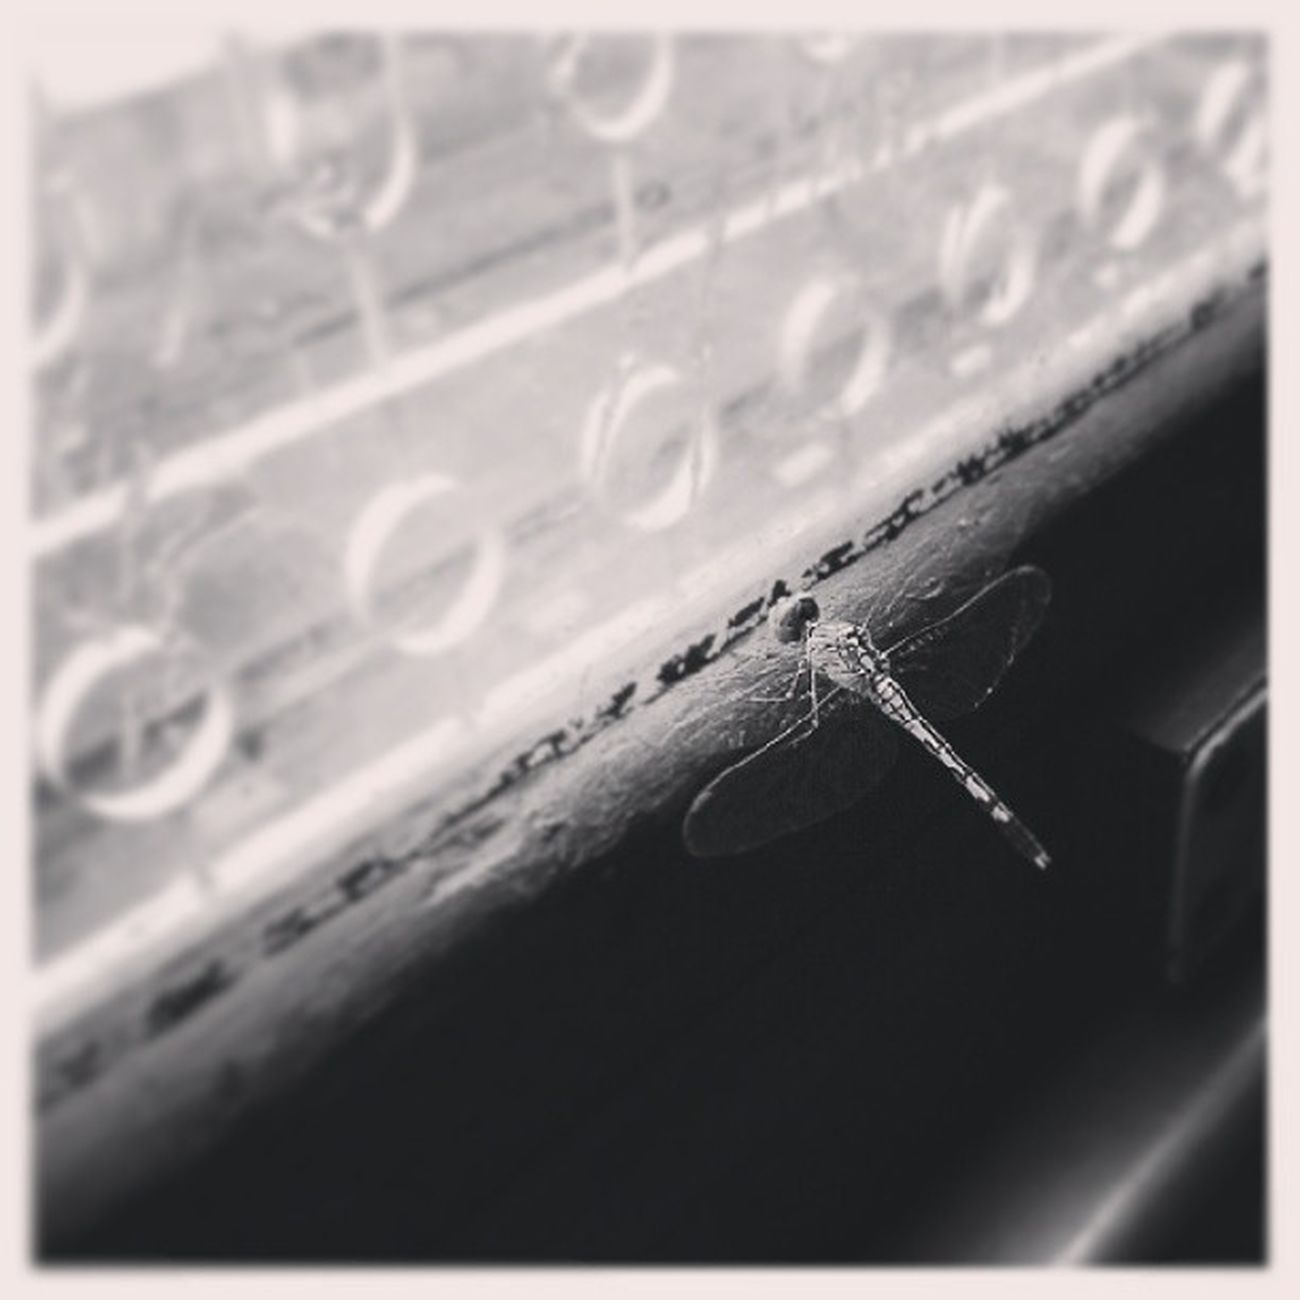 Dragonfly CabinNo4 Instaeveryday Heartit 15Jul13 Insect Train Windowsill Glass Raining